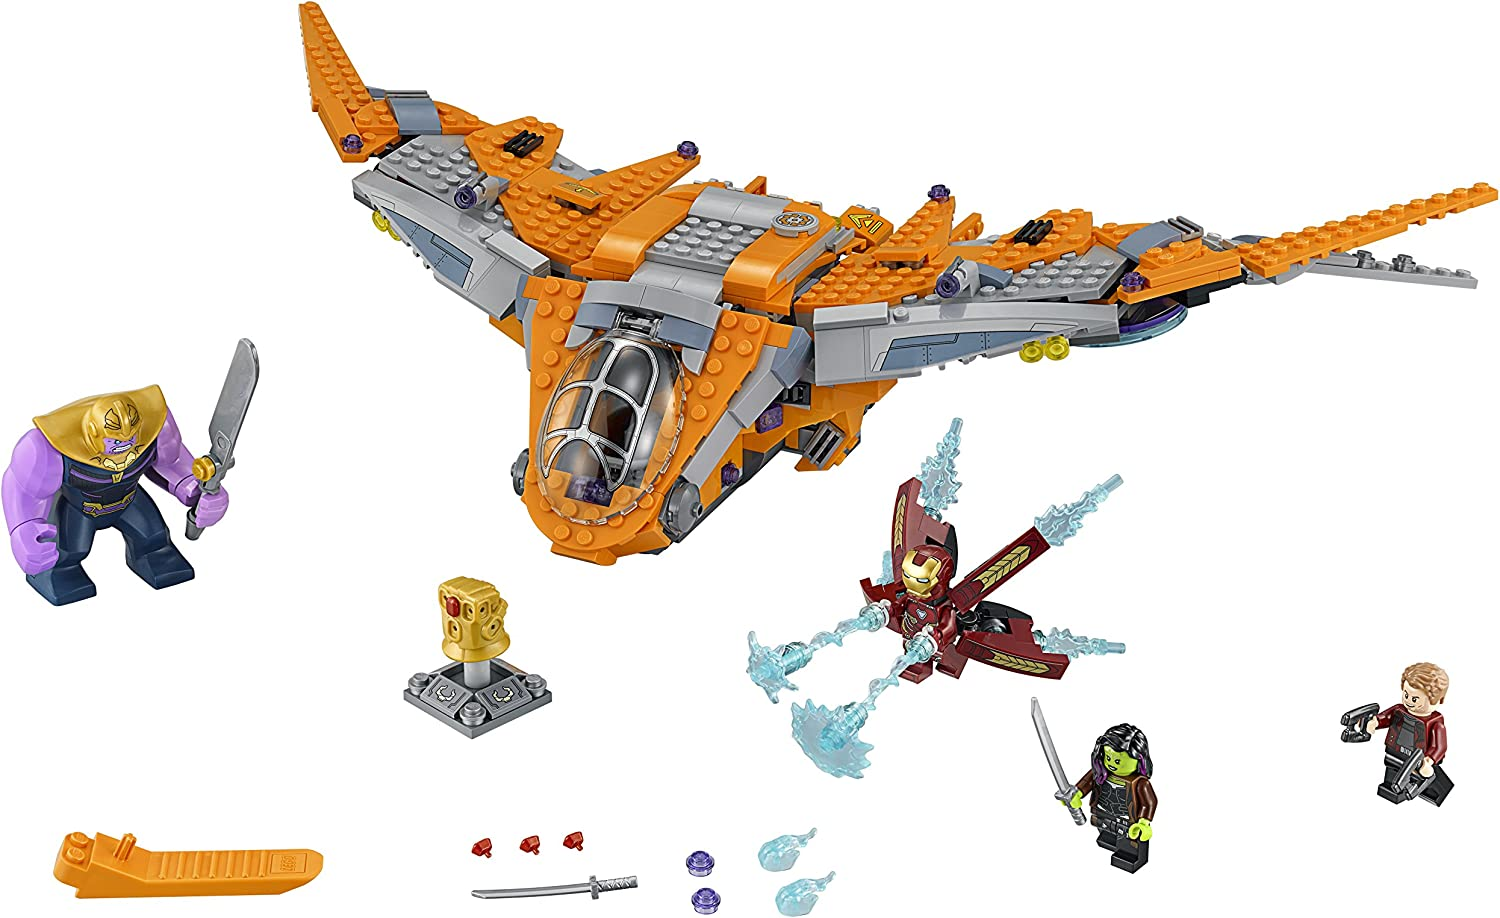 New legoings Super Heroes Avengers Infinity War Thanos Ultimate Battle 76107